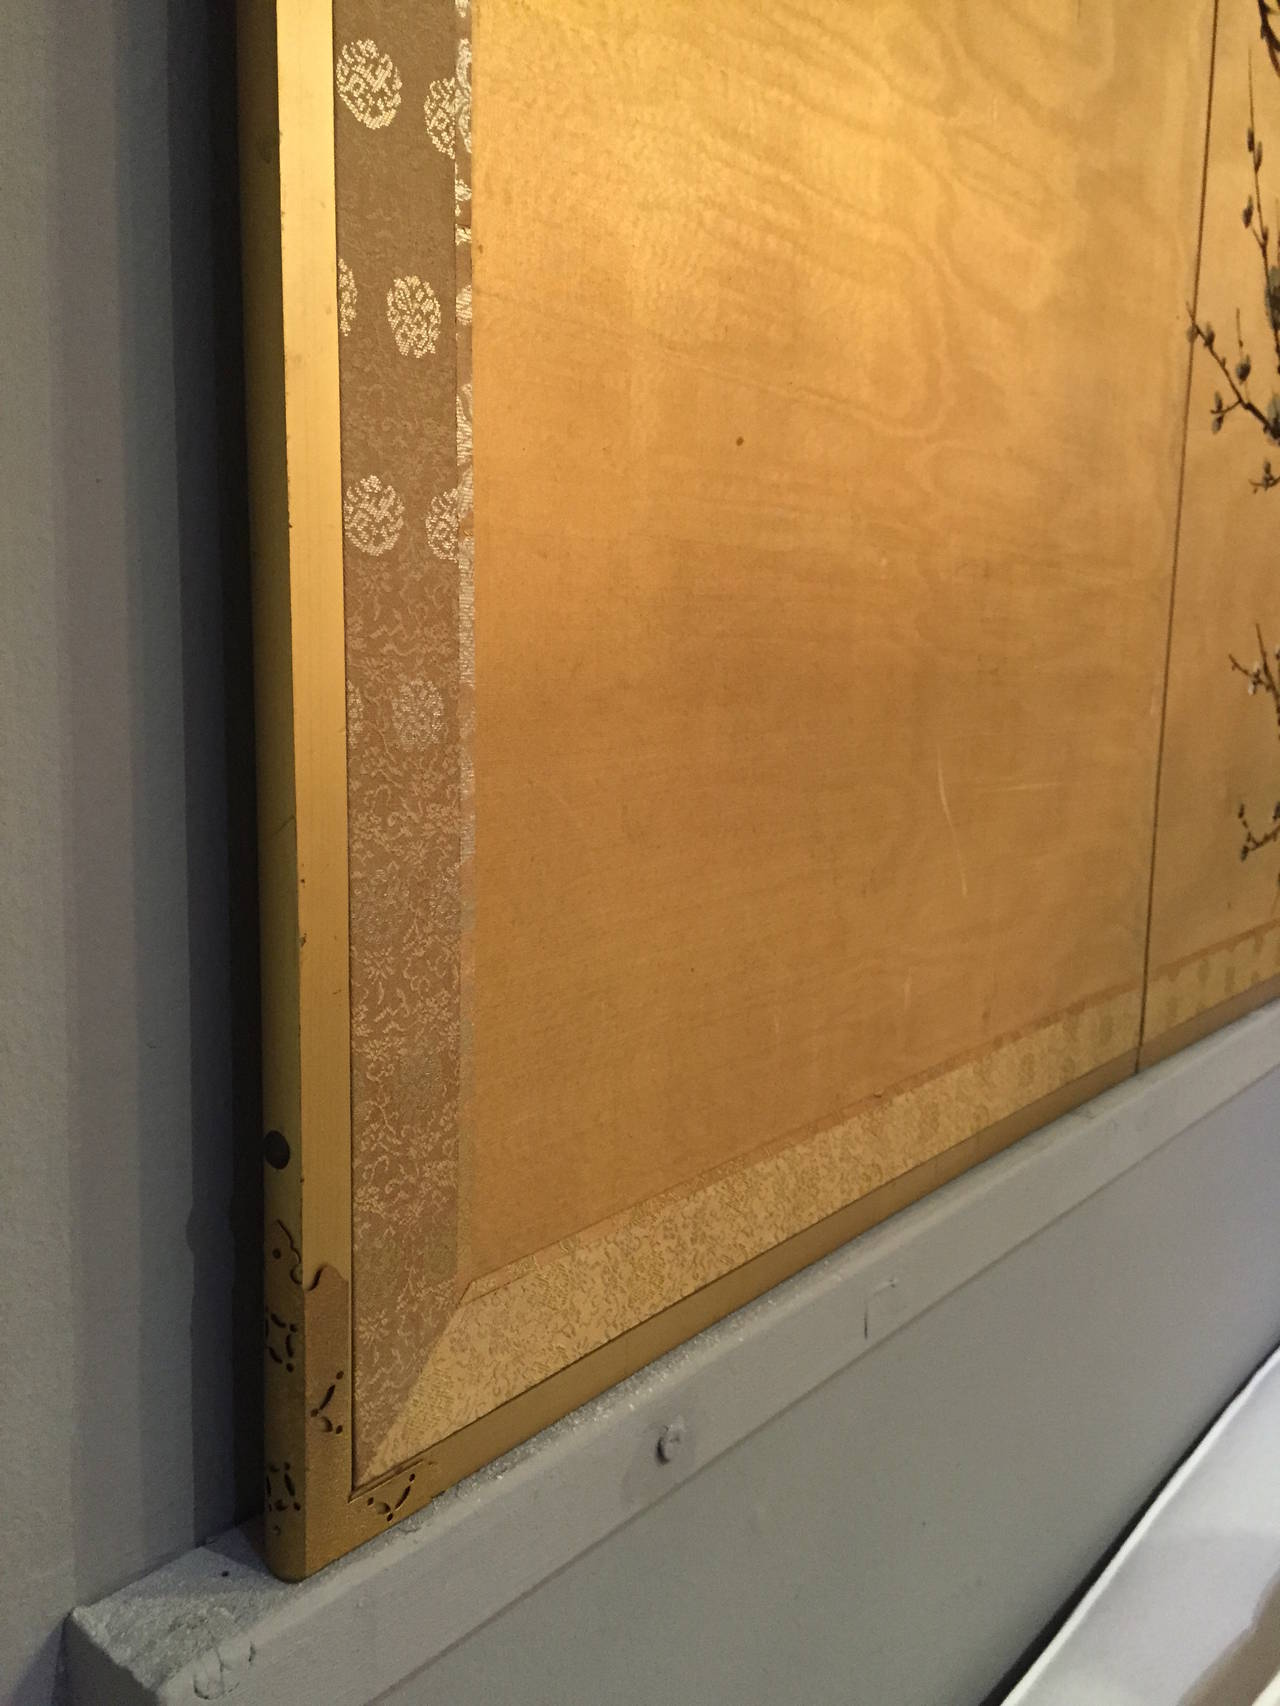 Byobu Antique Japanese Screen Painting Four Panels